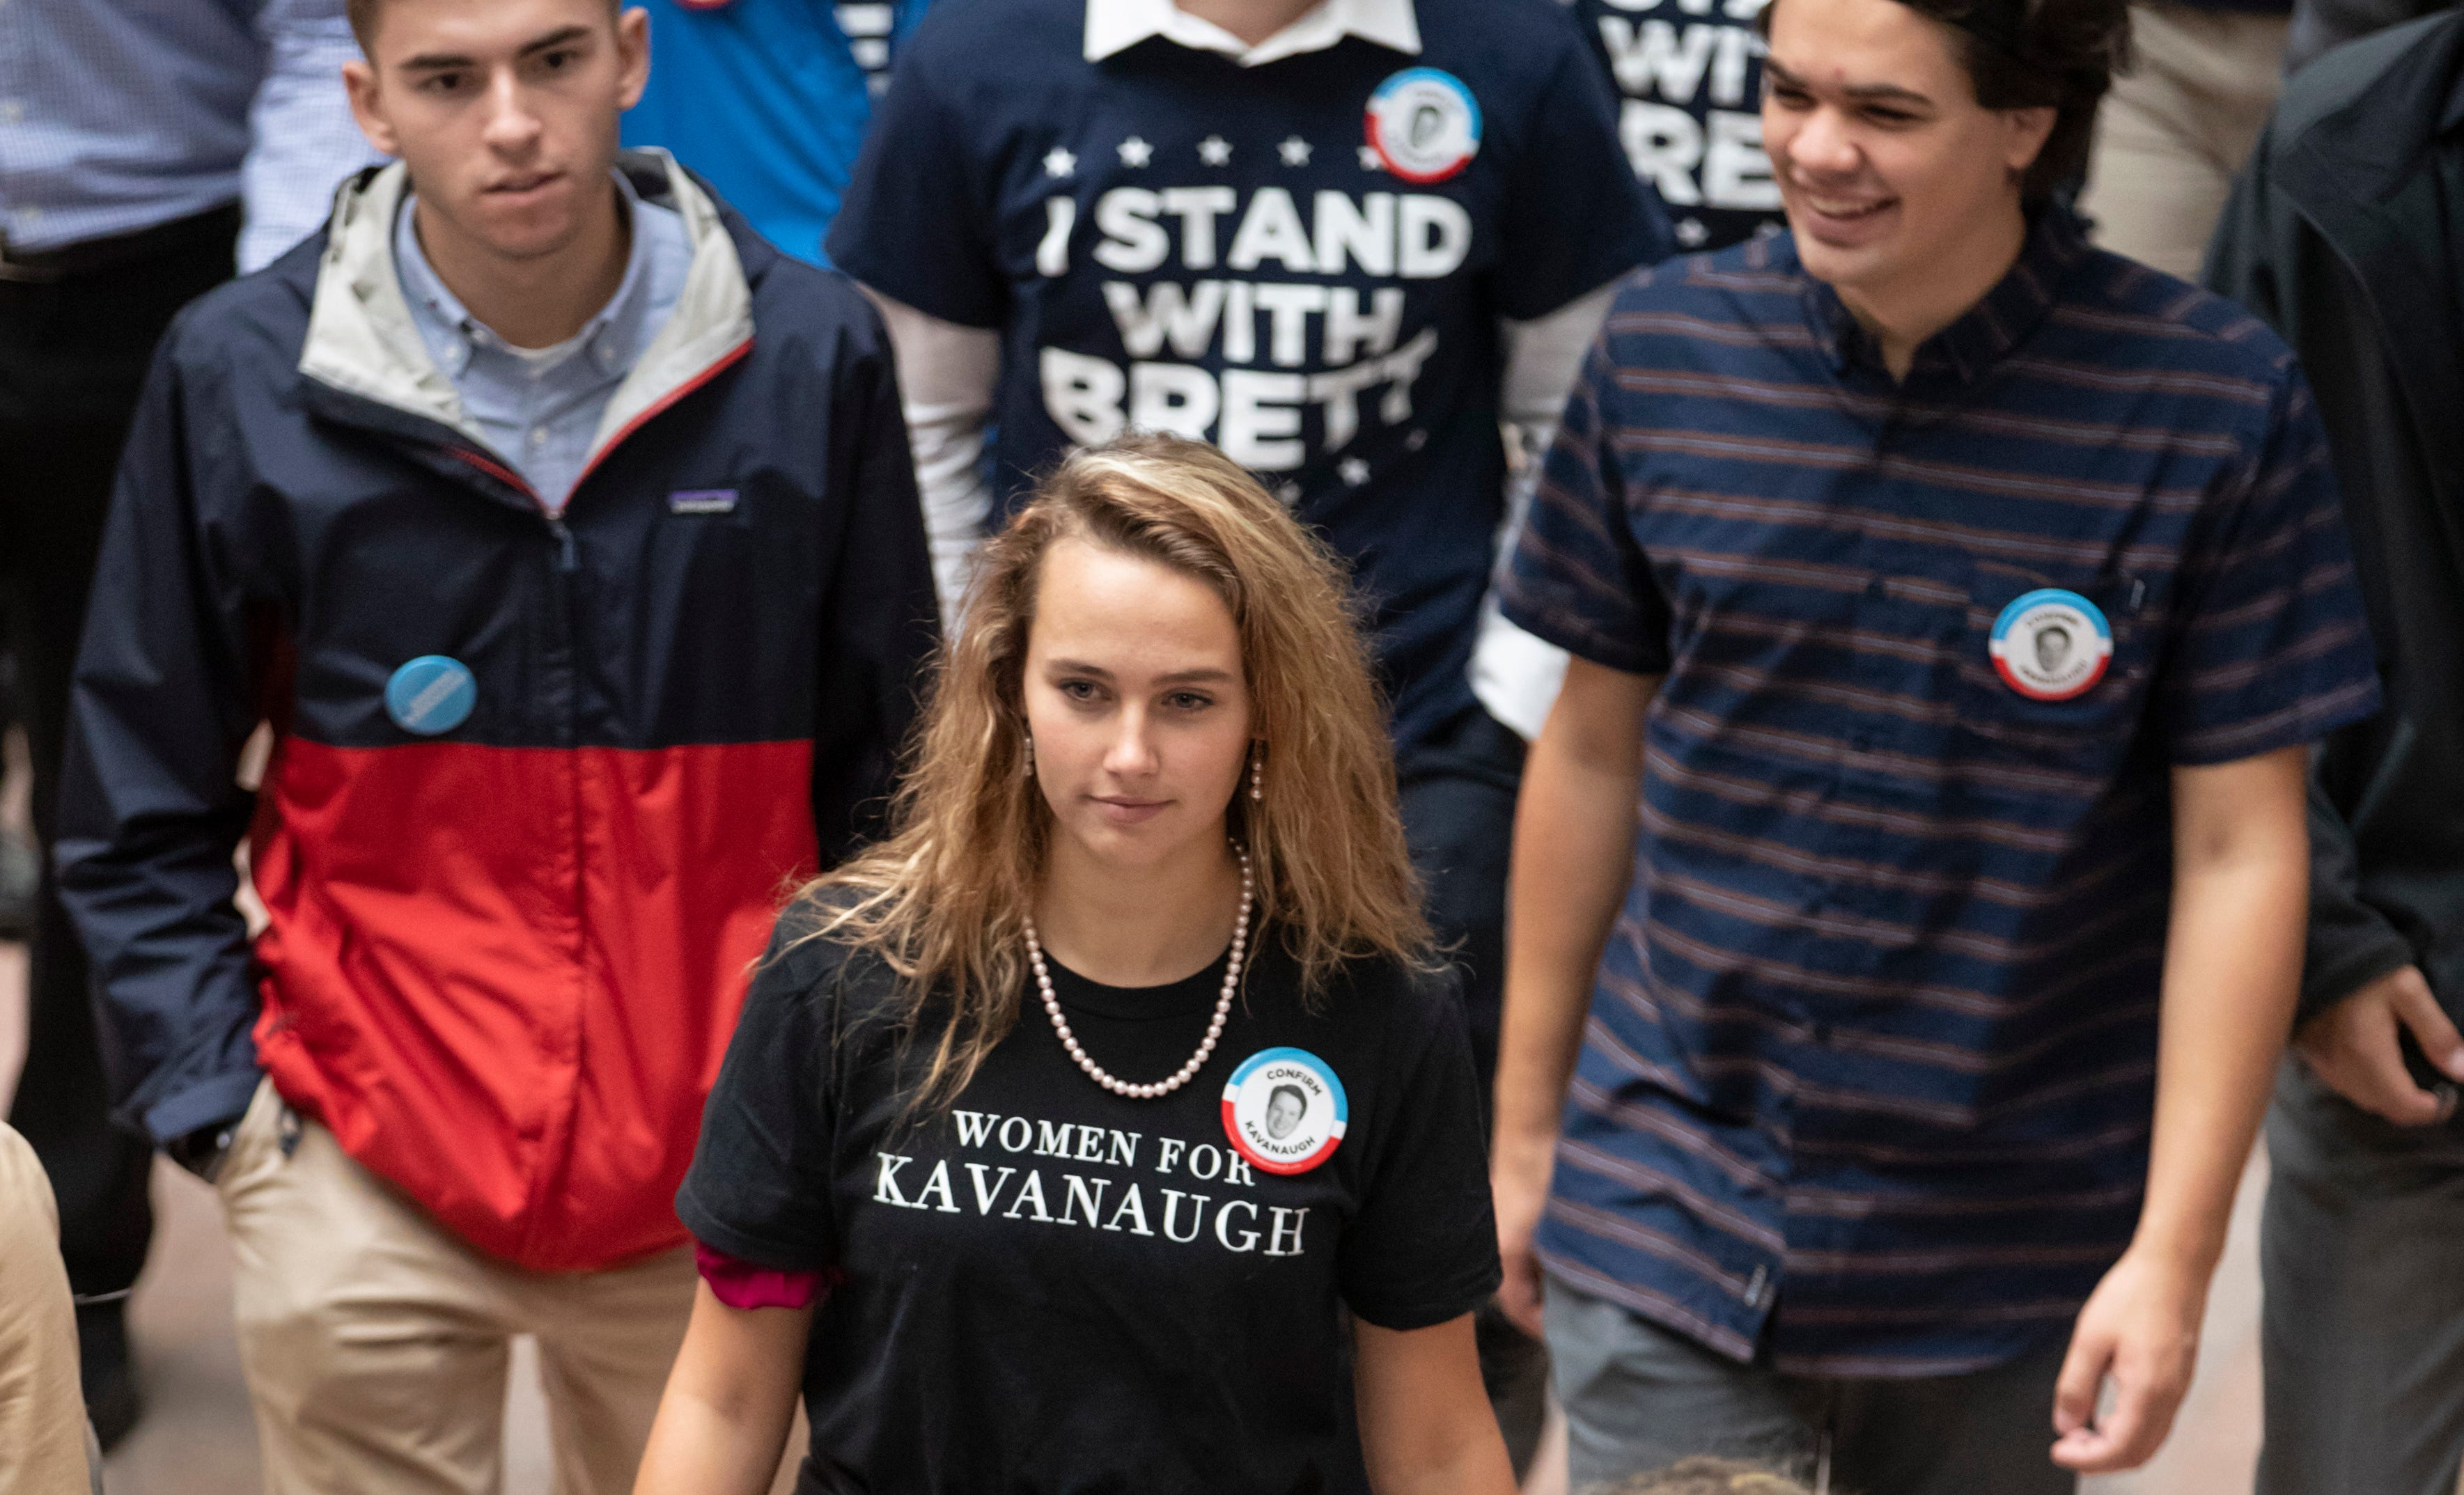 Supporters of Supreme Court nominee Brett Kavanaugh walk through the Hart Senate Office Building as the Senate Judiciary Committee hears from Kavanaugh and Christine Blasey Ford on Capitol Hill in Washington, Sept. 27, 2018.